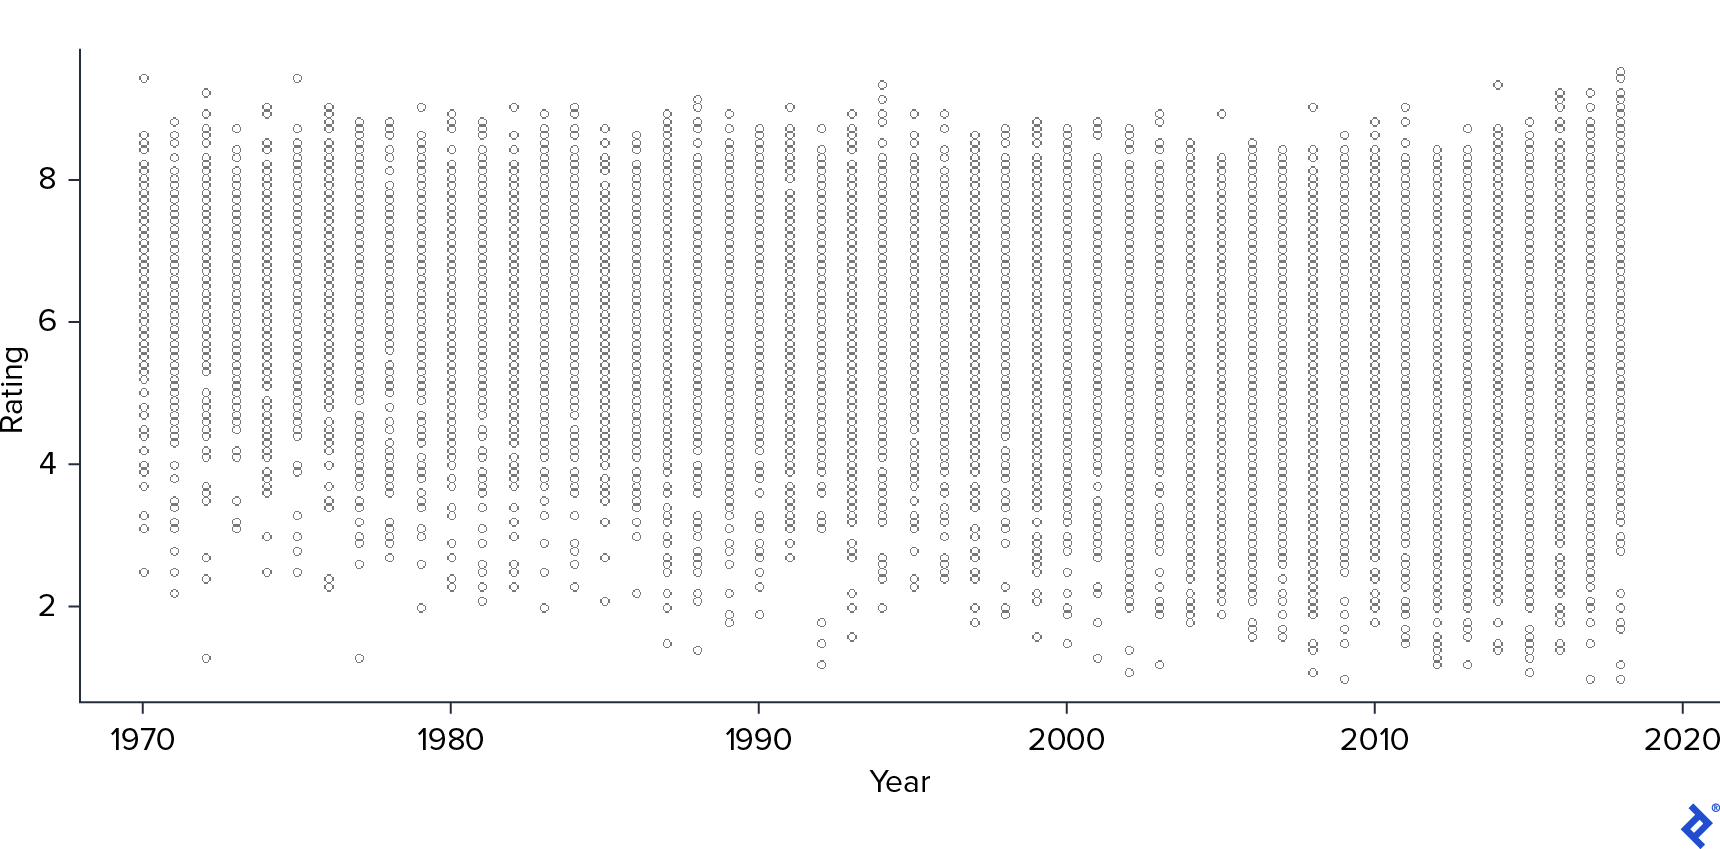 A scatter plot of rating and years.